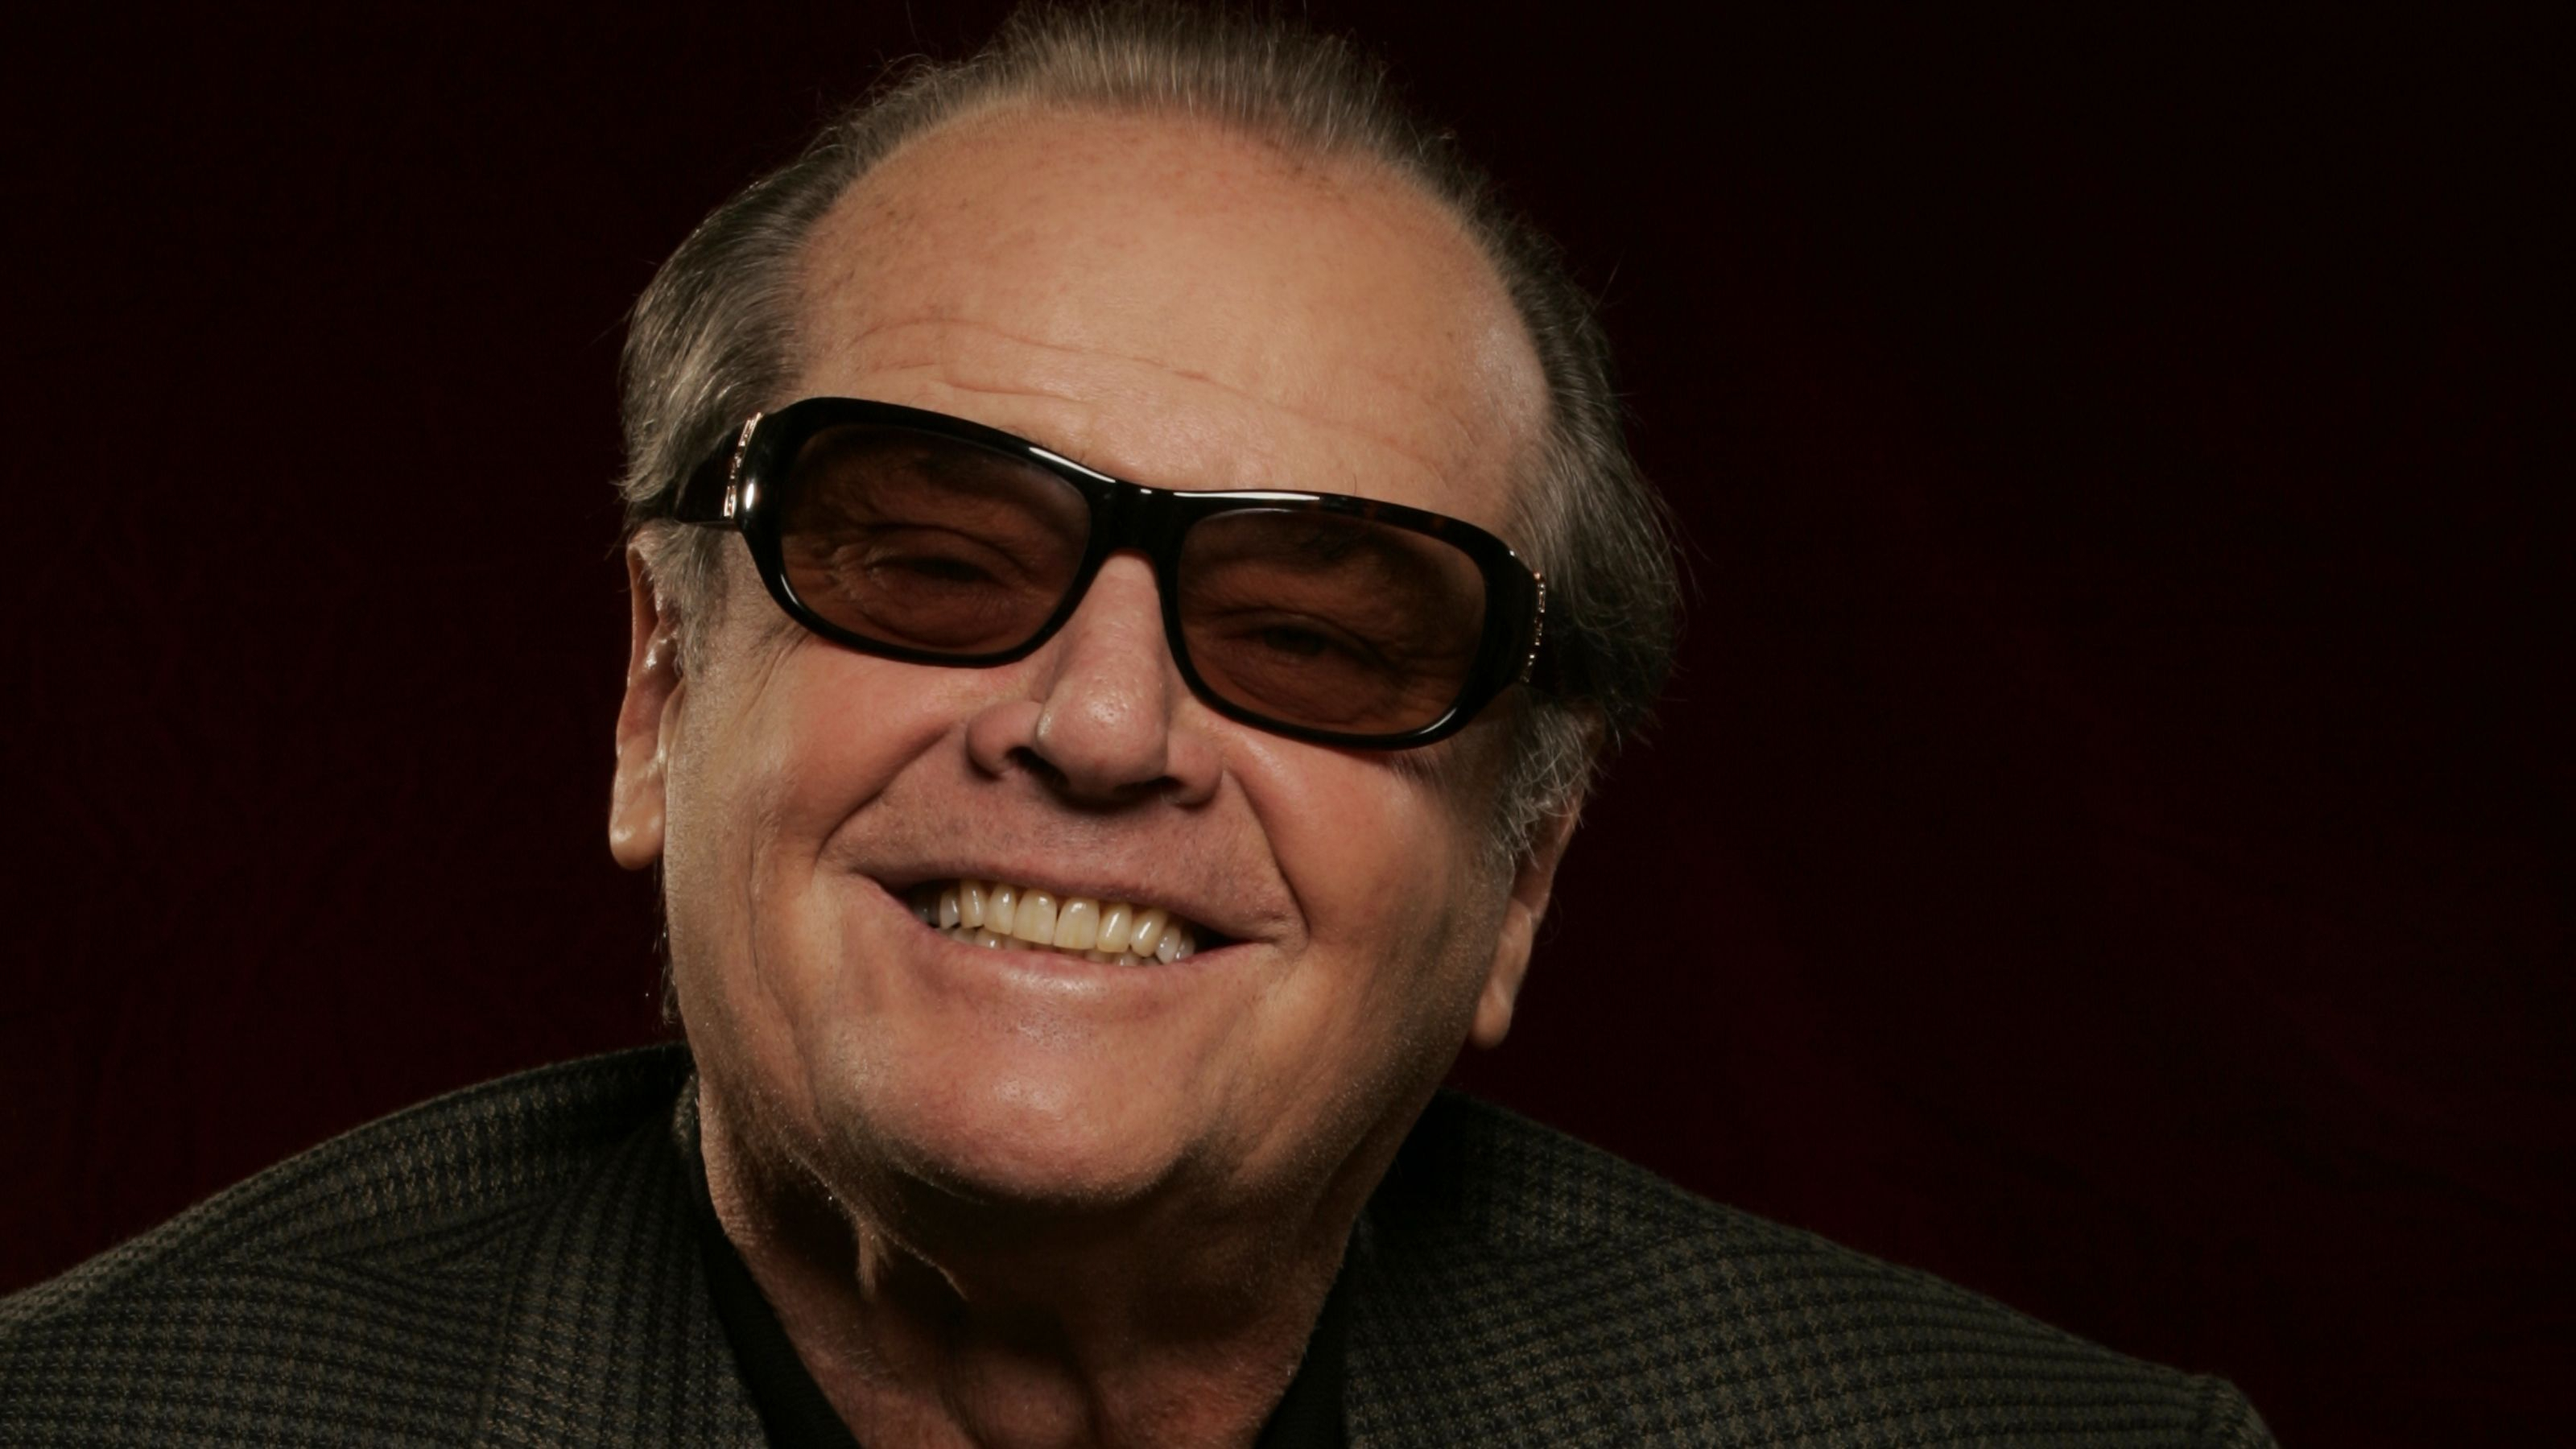 Jack Nicholson Wallpapers Images Photos Pictures Backgrounds 3200x1800